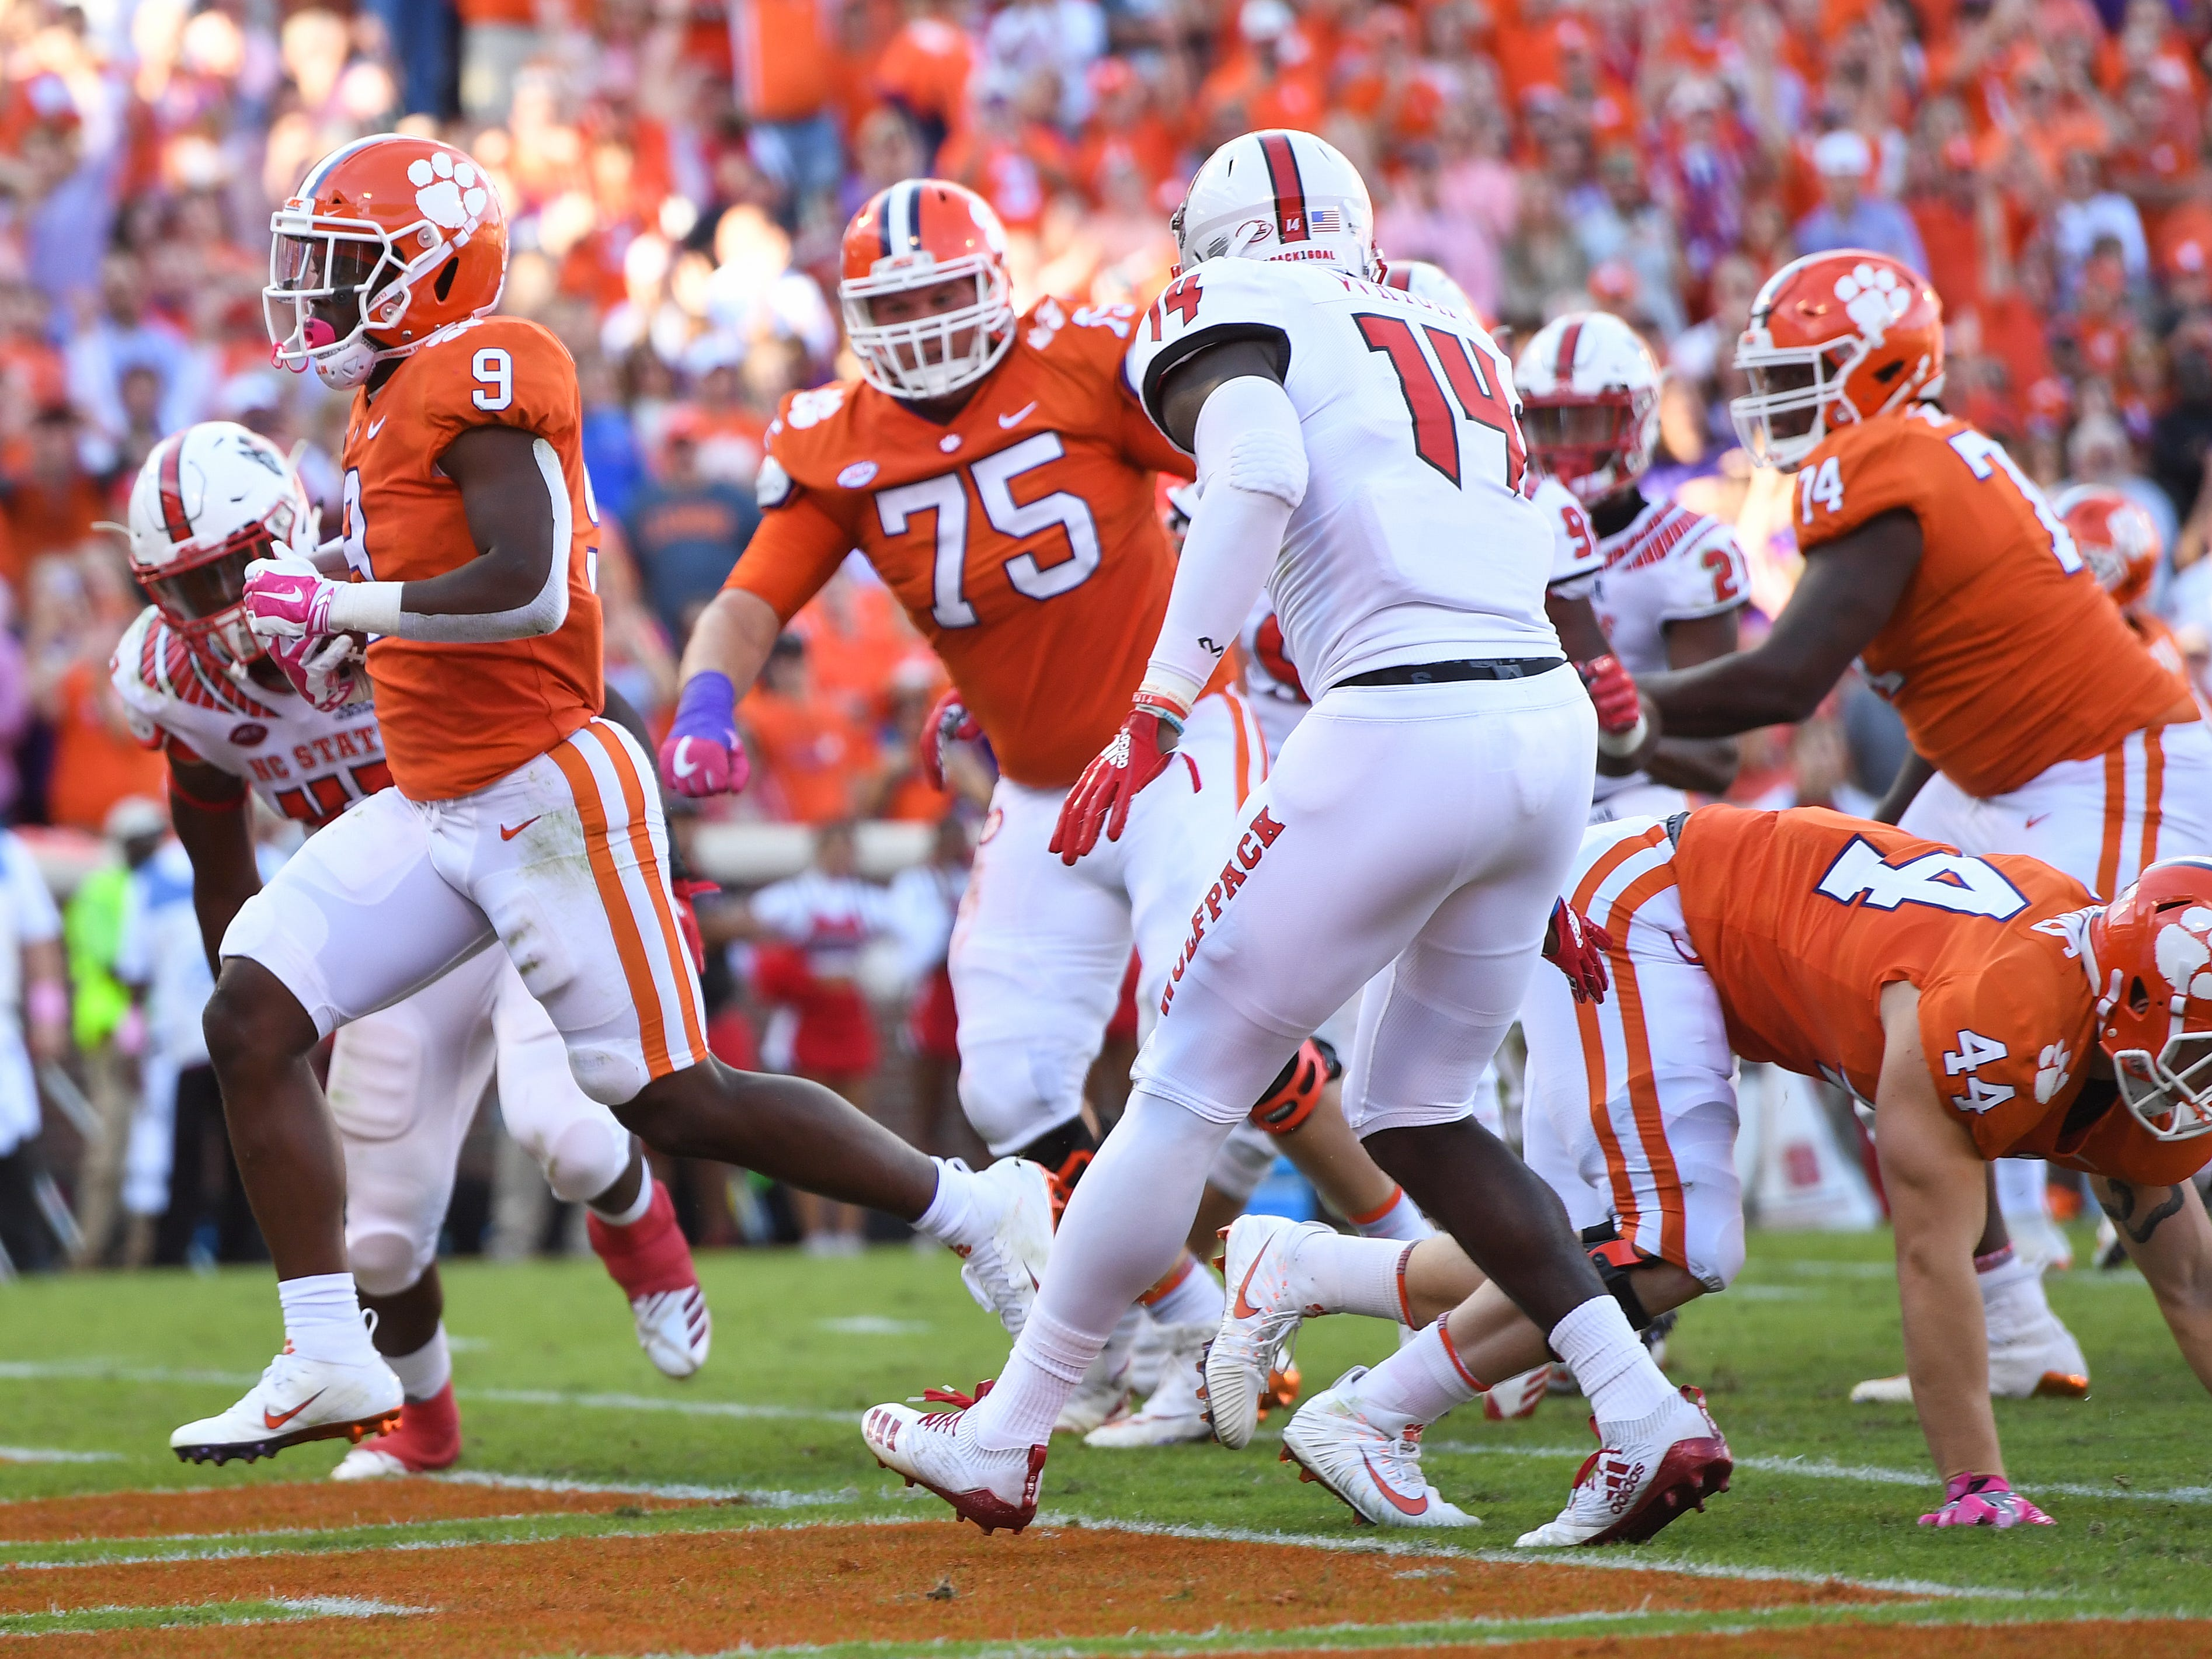 Clemson running back Travis Etienne (9) scores against NC State during the second quarter.